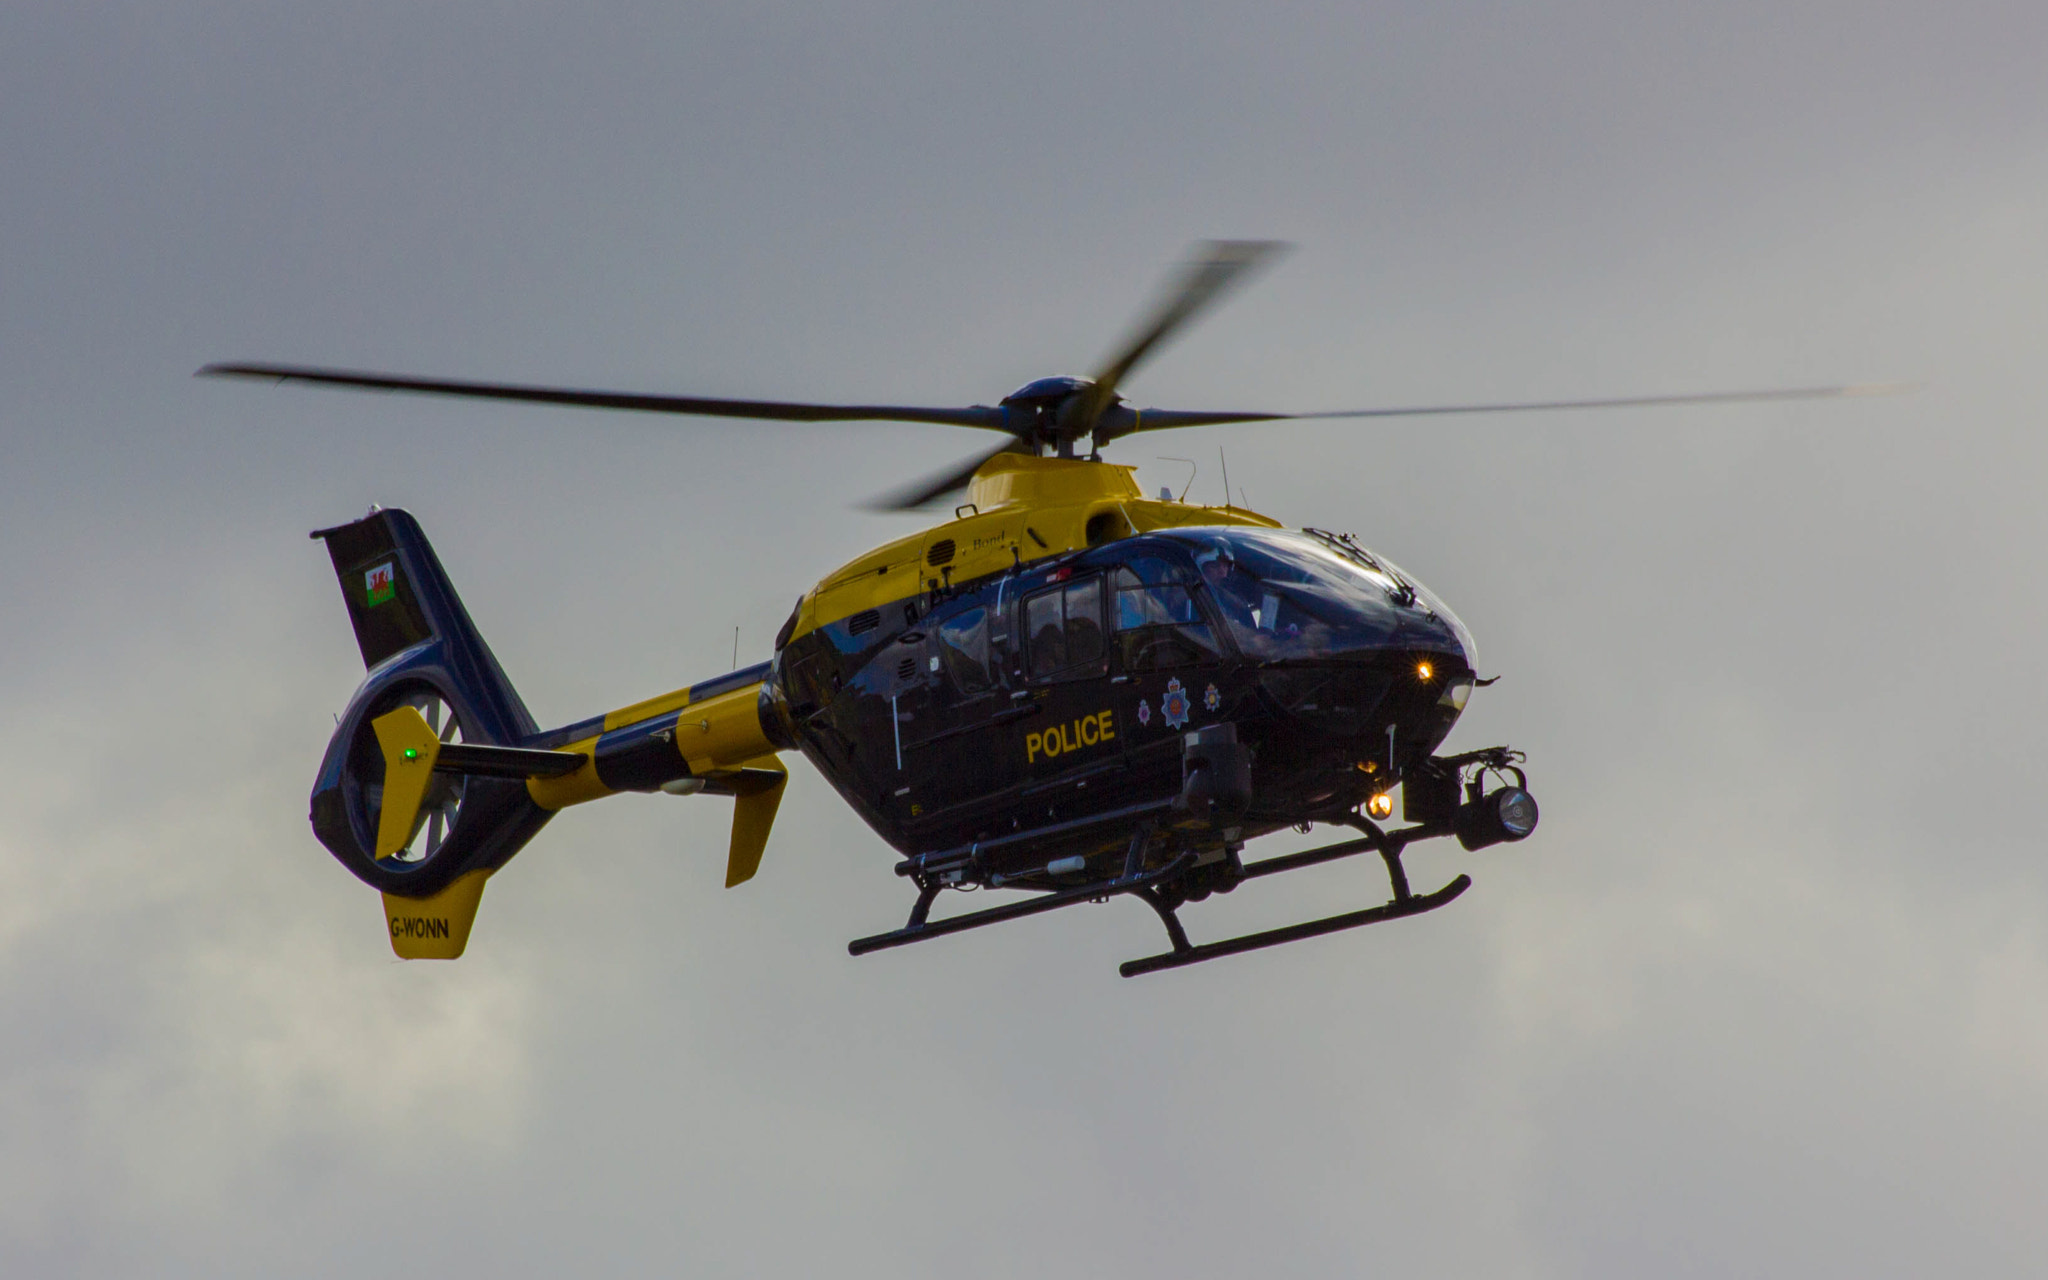 Photograph South Wales Police Helicopter by Jacob Harris on 500px